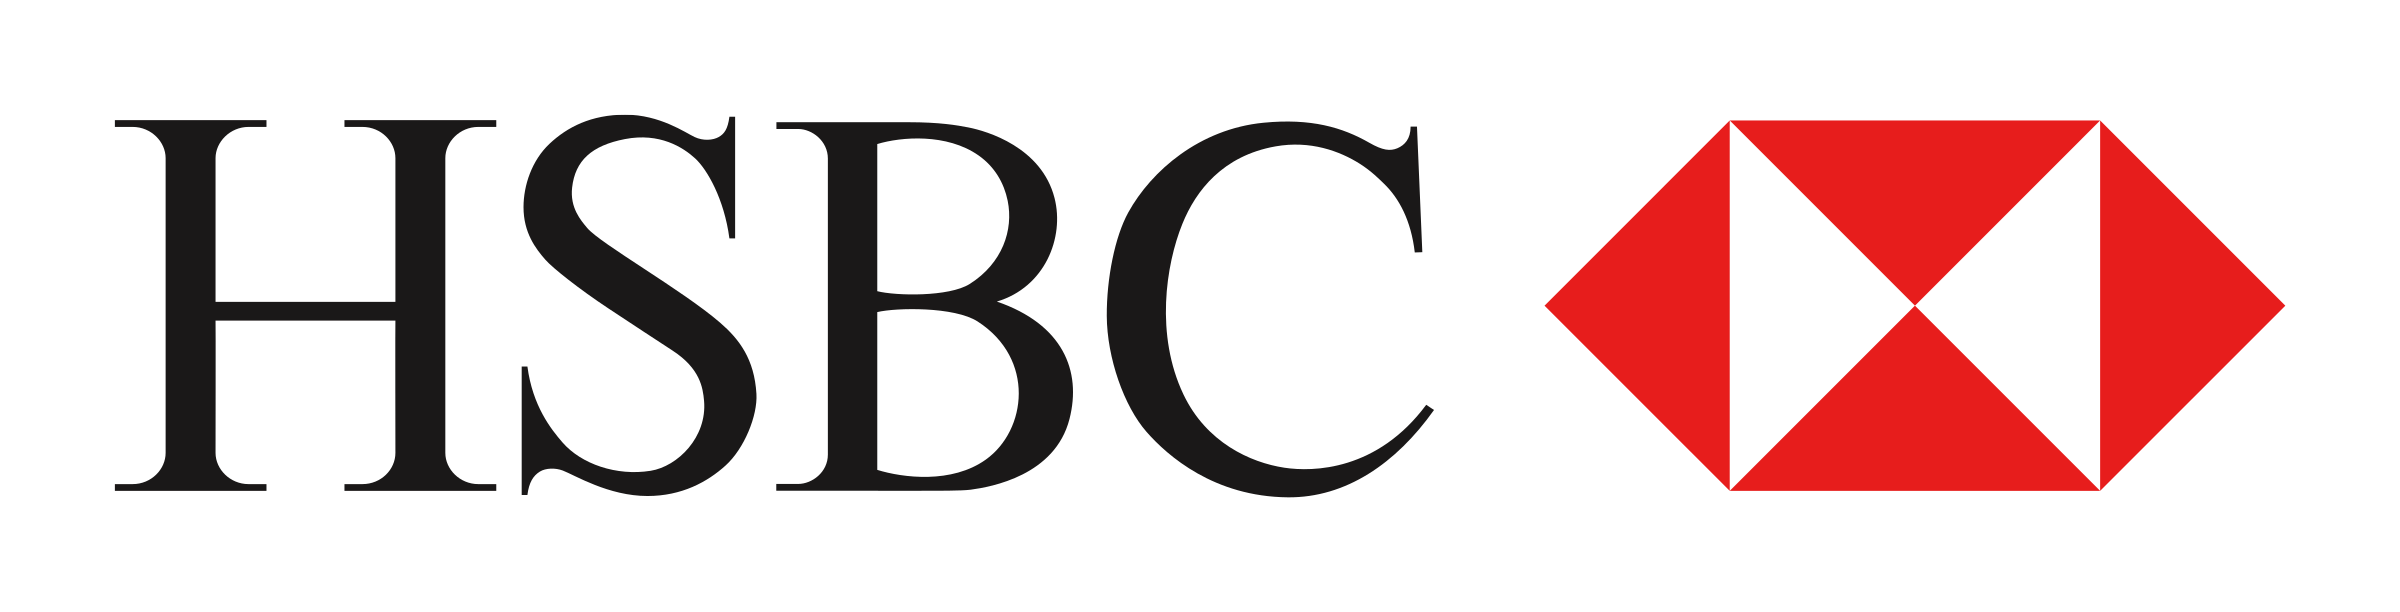 2019 HSBC Transparent logo.png